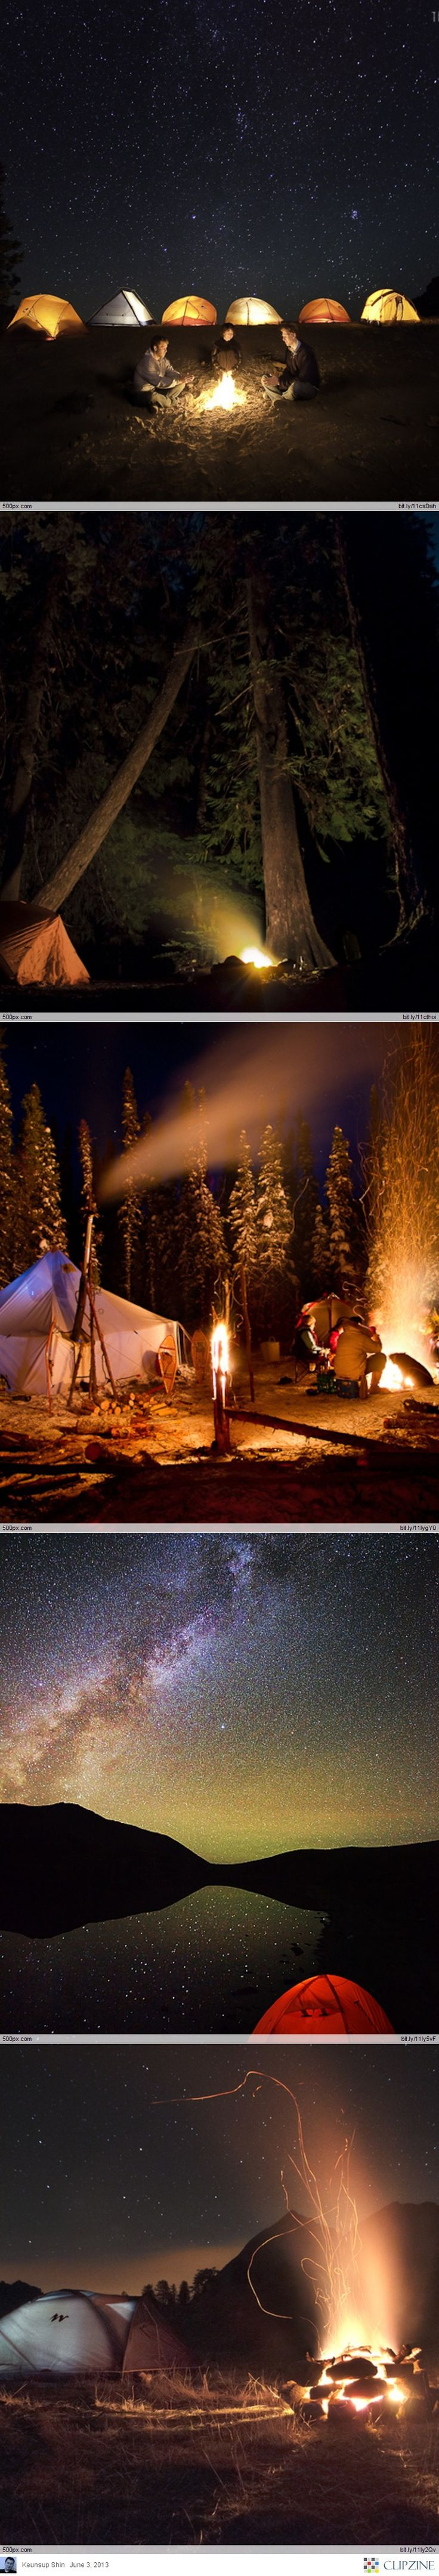 Camping Under the stars!